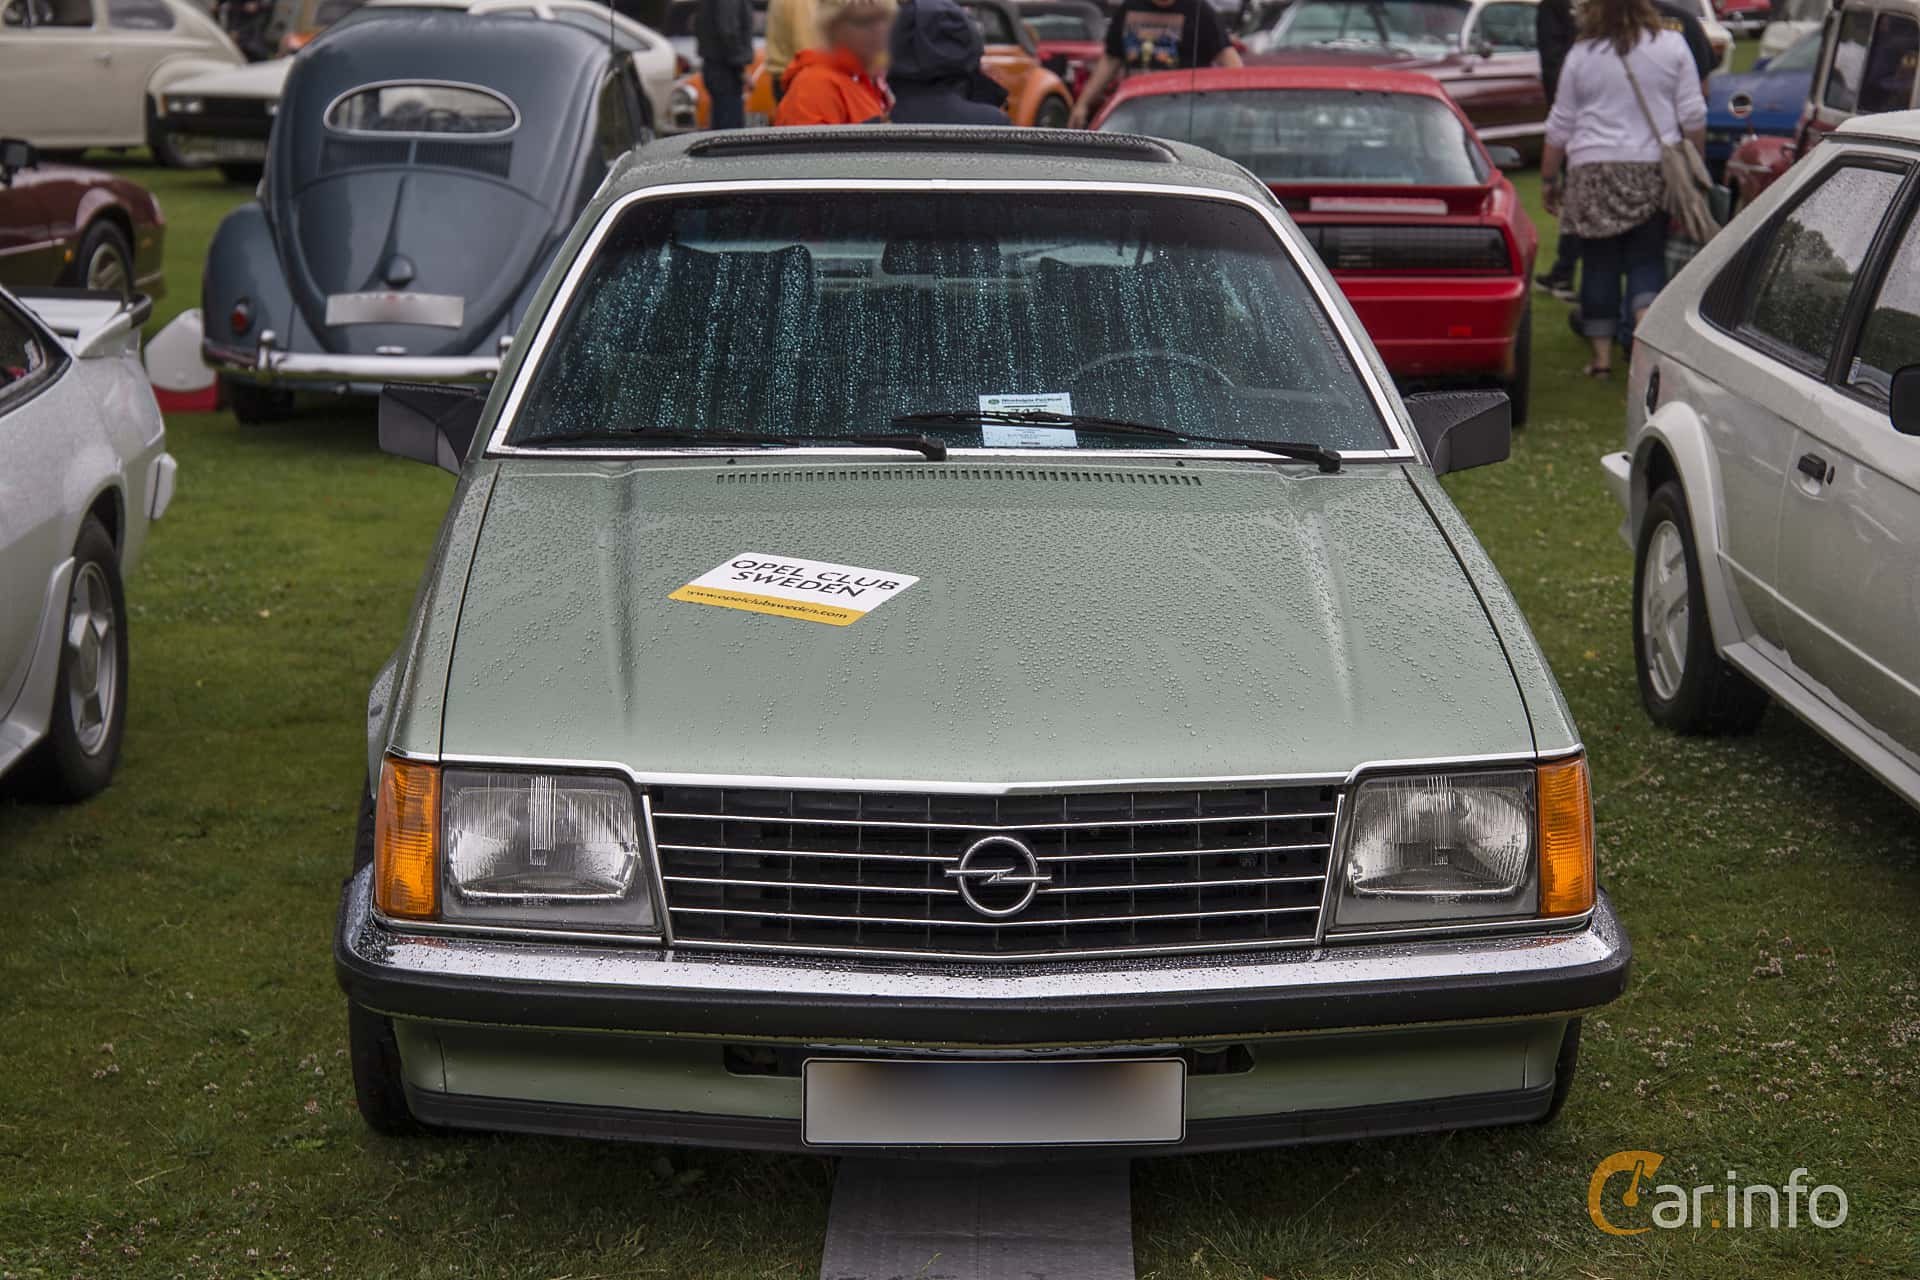 Opel Monza 3.0 Automatic, 180hp, 1982 at Ronneby Nostalgia Festival 2016